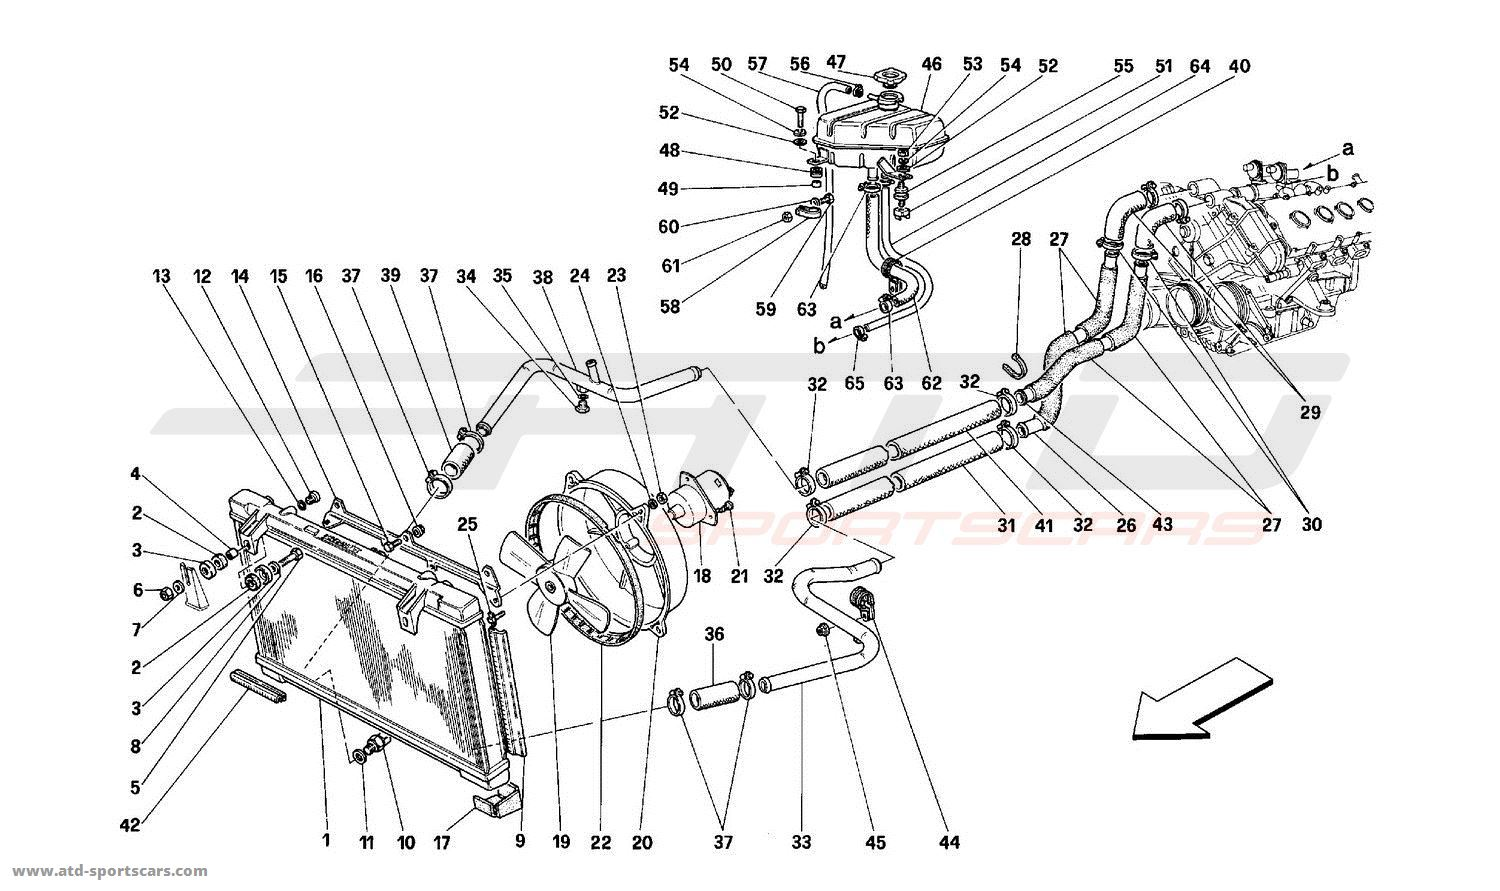 1984 Ferrari Mondial Wiring Diagram likewise Ferrari Mondial Wiring Diagram moreover Ferrari Engine Diagram Crankcase Page 001 together with Ferrari Engine Diagram Crankcase Page 001 moreover Ferrari 355 Wiring Diagram. on ferrari mondial wiring diagram